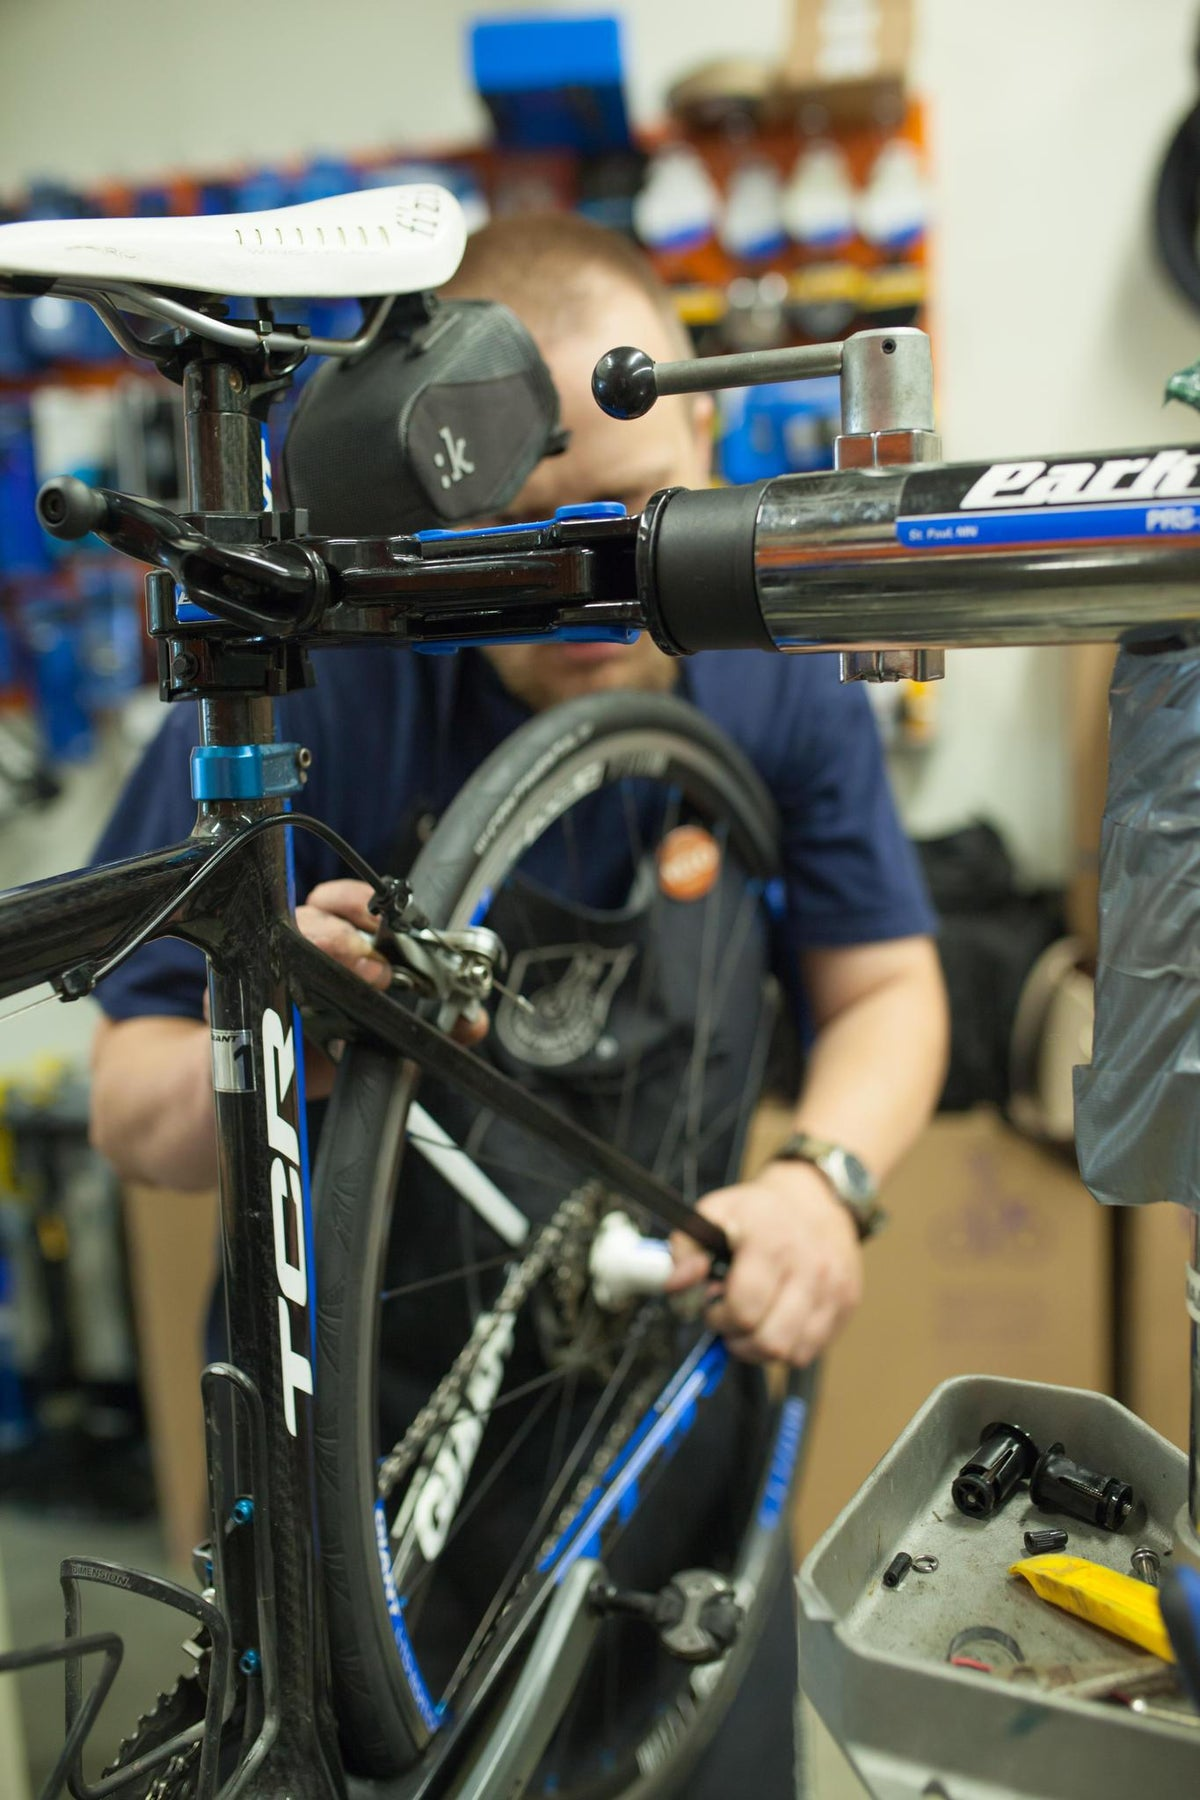 Spring clean time - 15% off any bike service until the end of October - Chillout